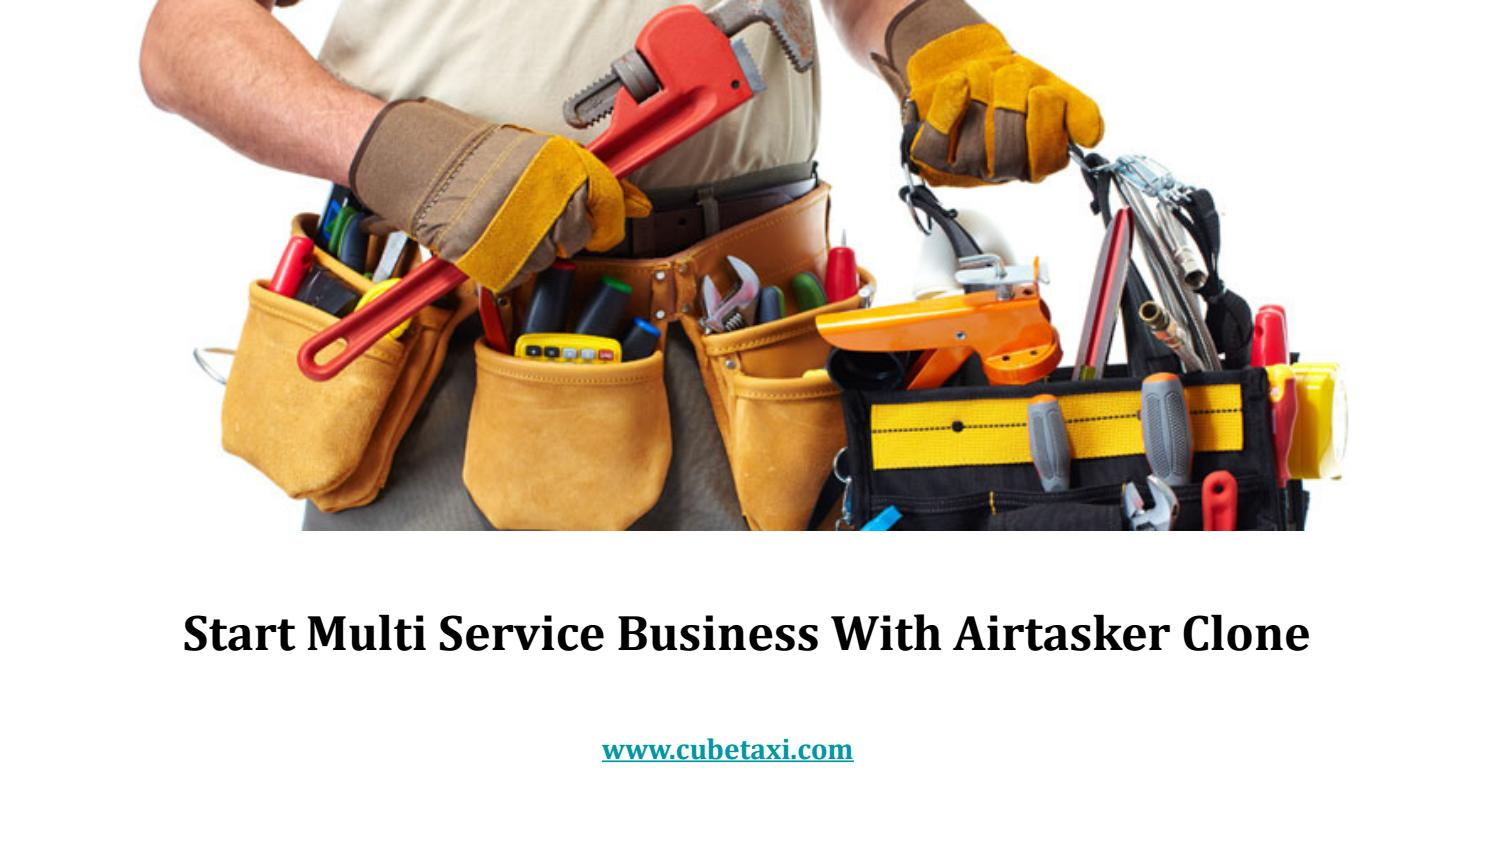 Start Multi-Service Business with Airtasker Clone by